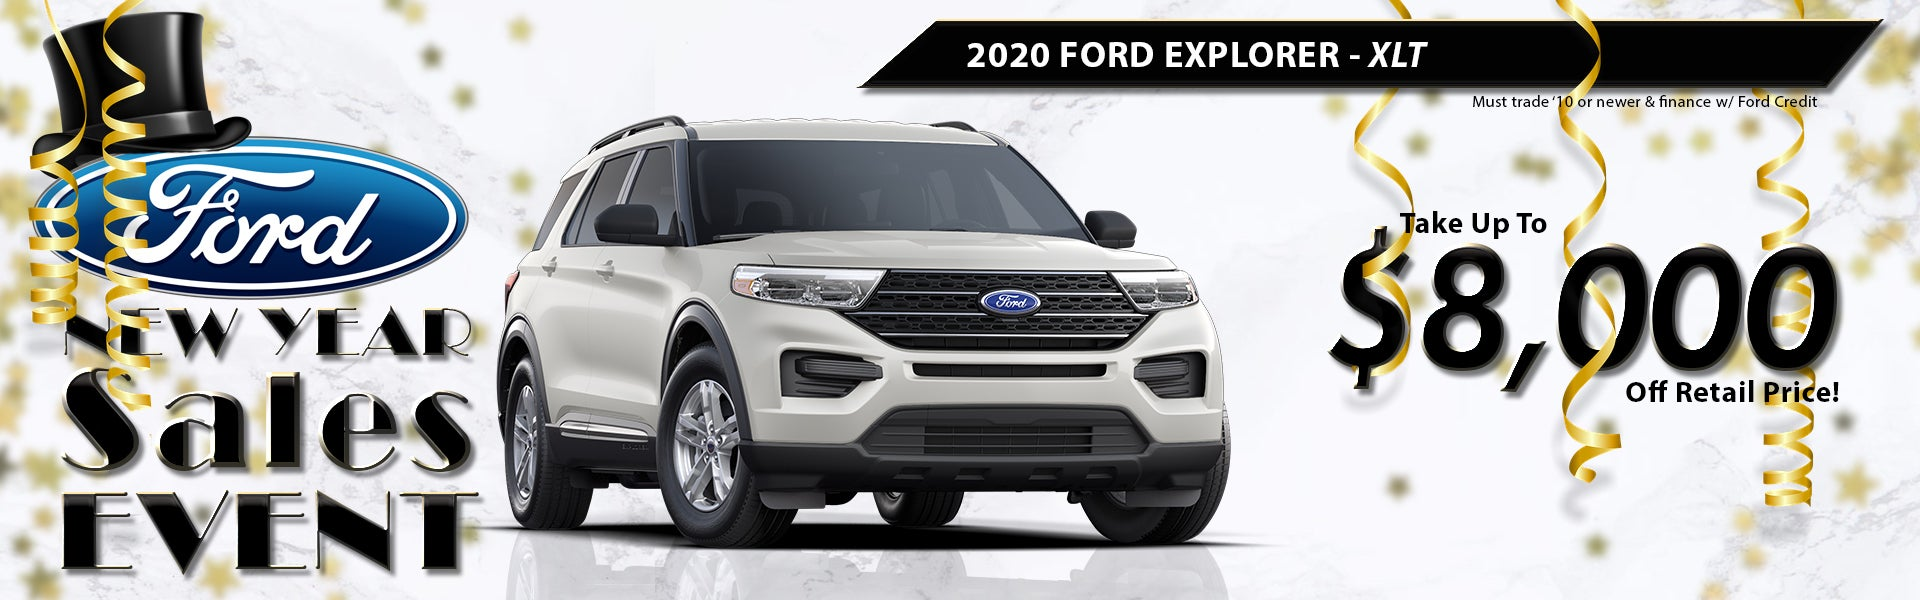 Offer Up Cars For Sale >> Ford Dealer In Lumberton Nc Used Cars Lumberton